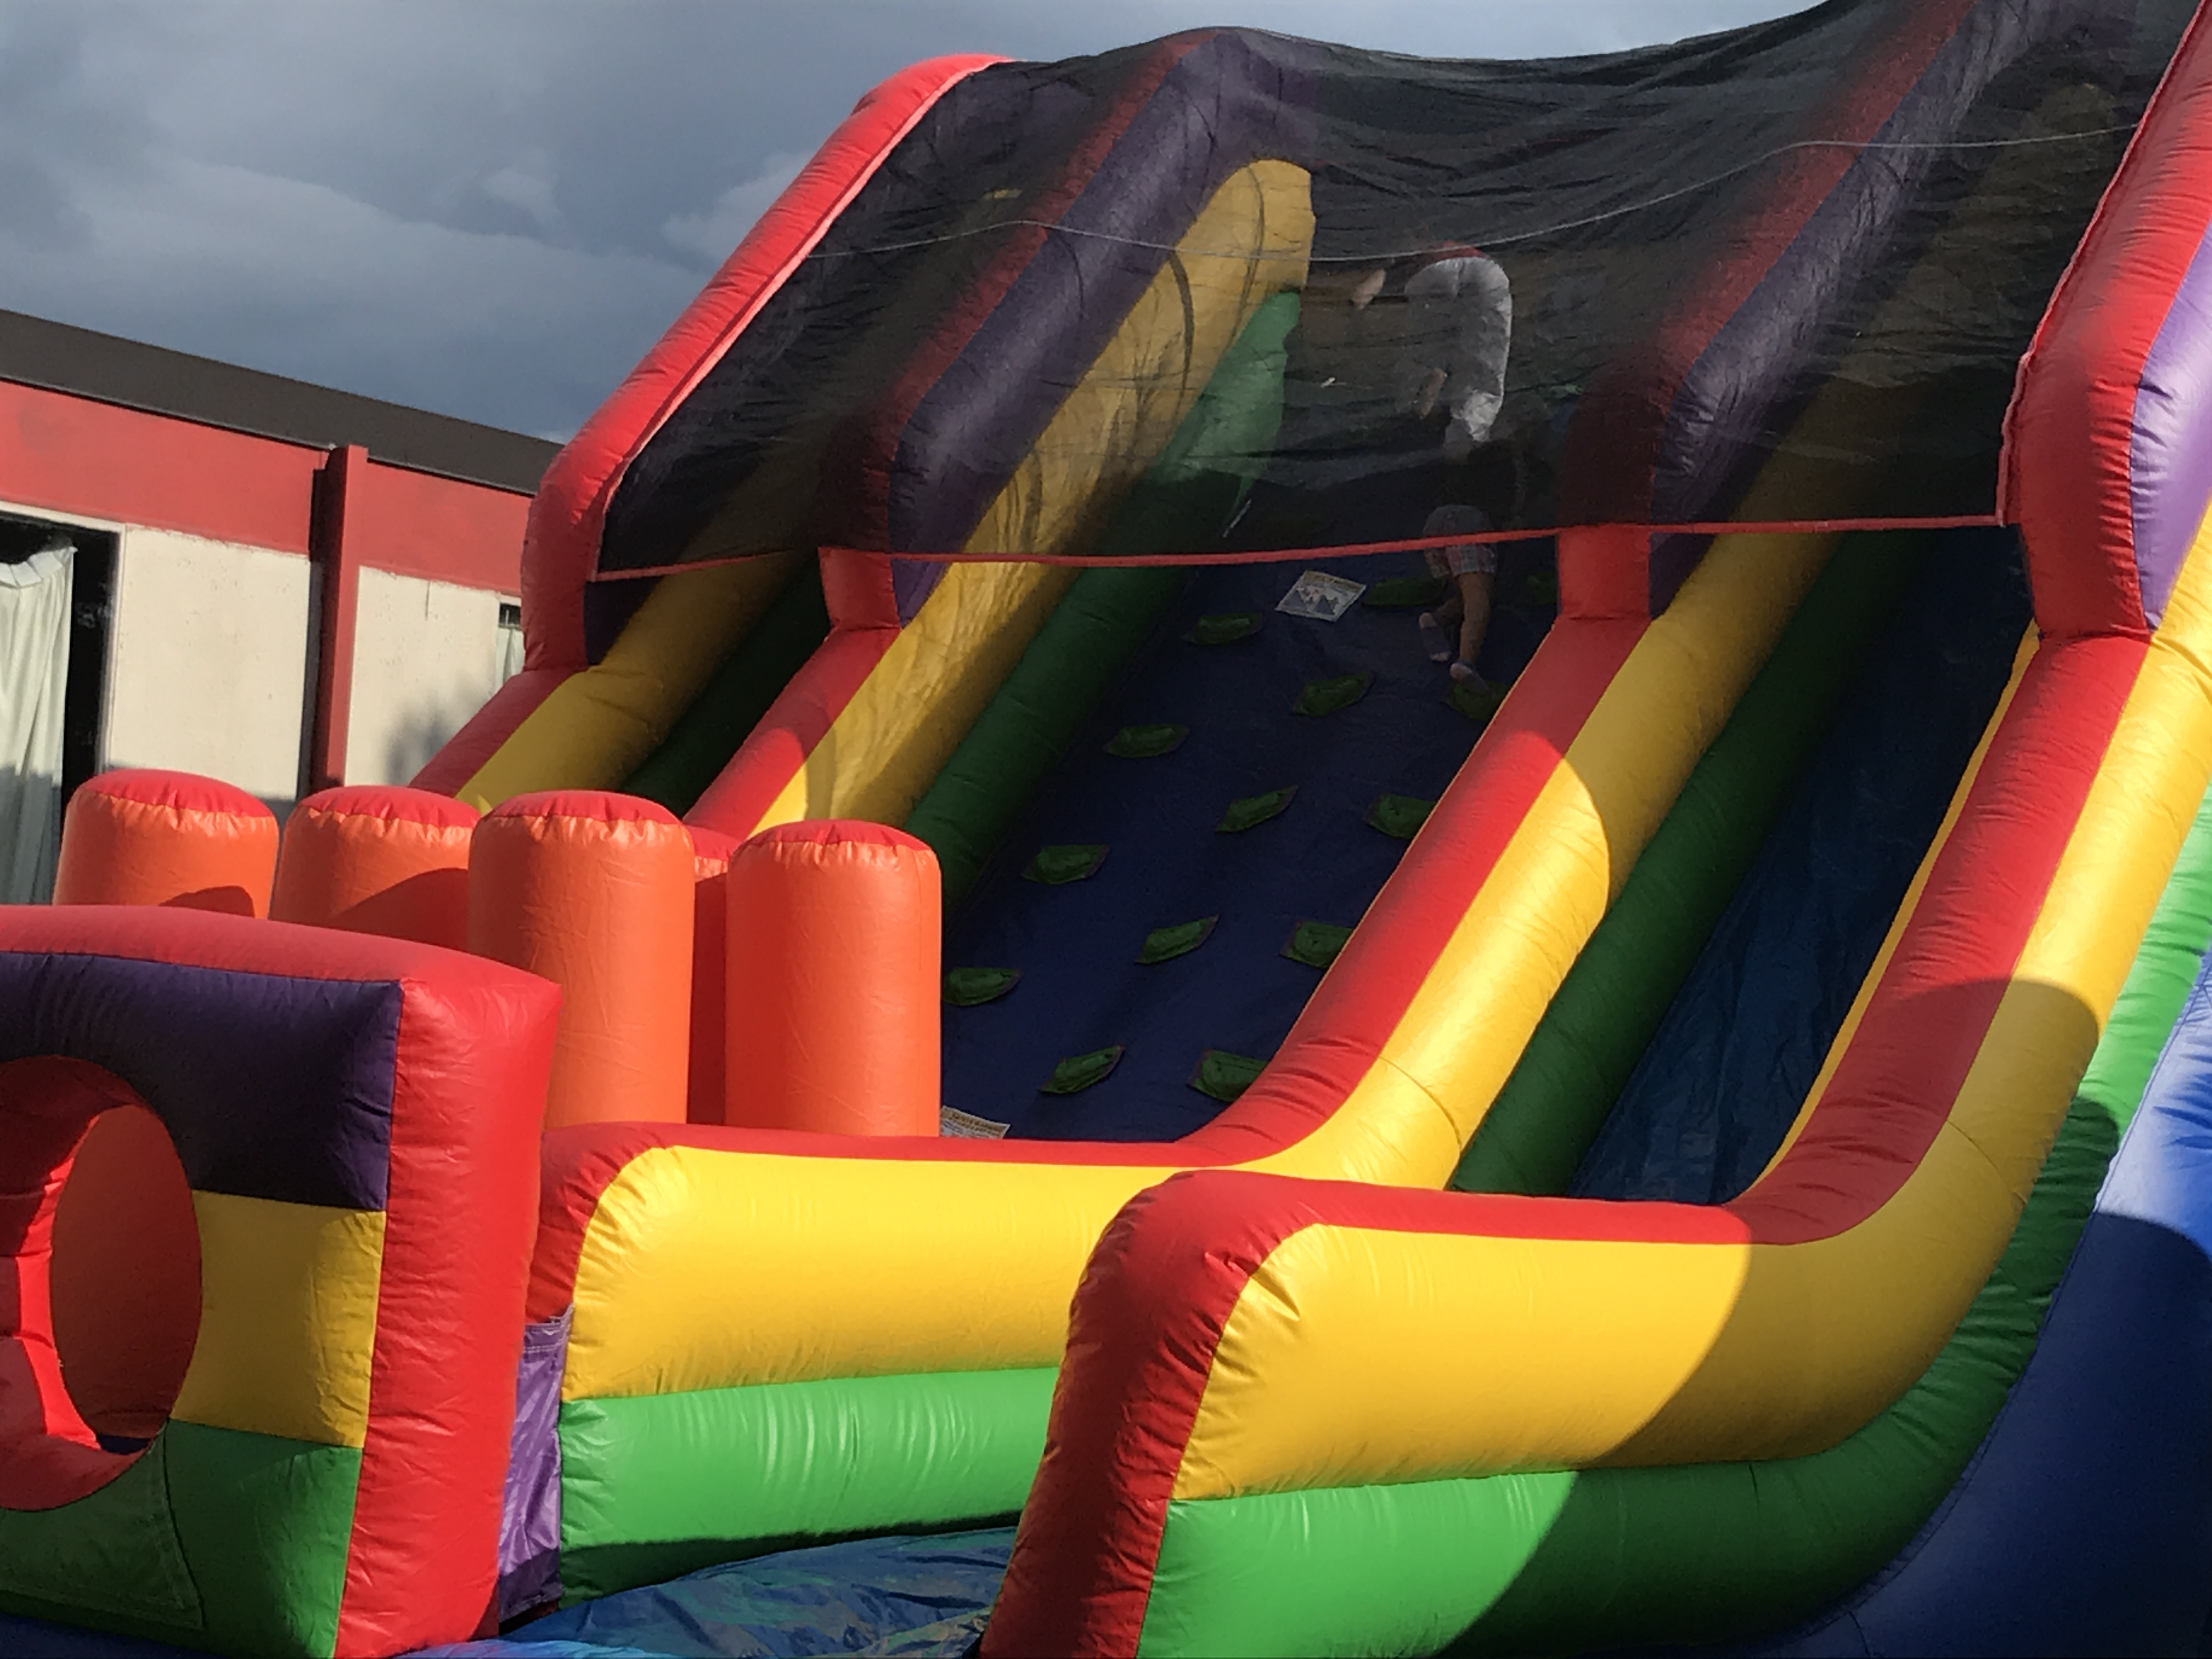 Bounce houses were part of the fun.